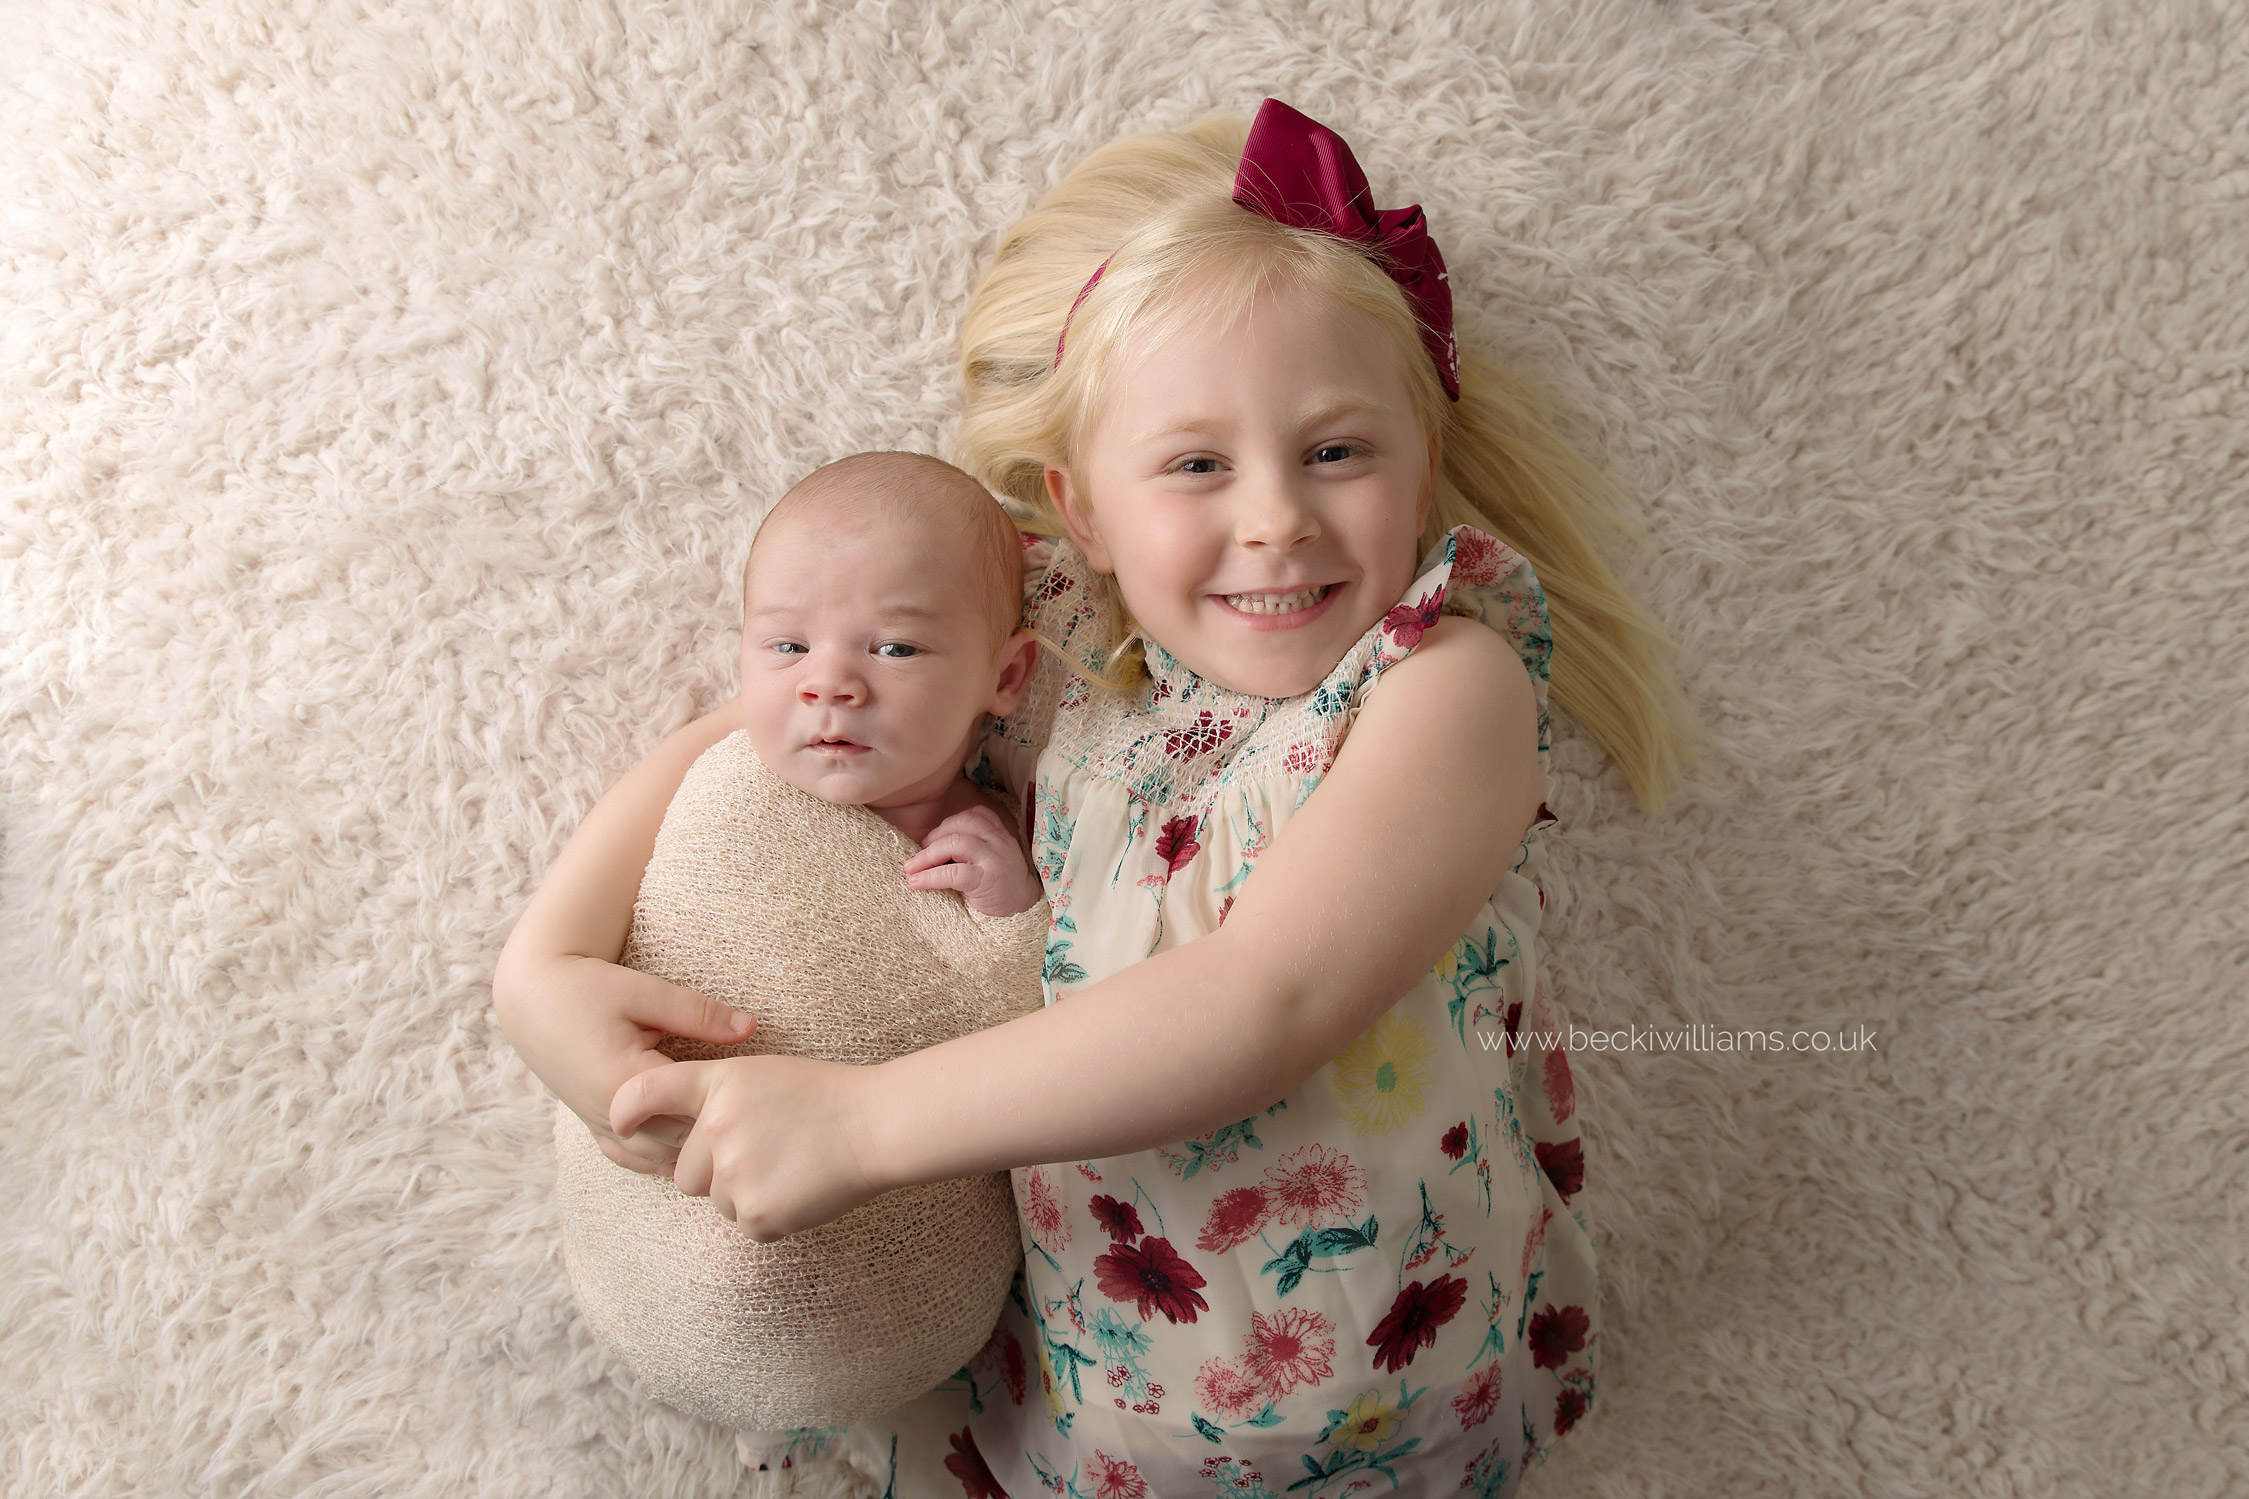 smiling big sister cuddles her newborn baby brother on a cream fluffy blanket